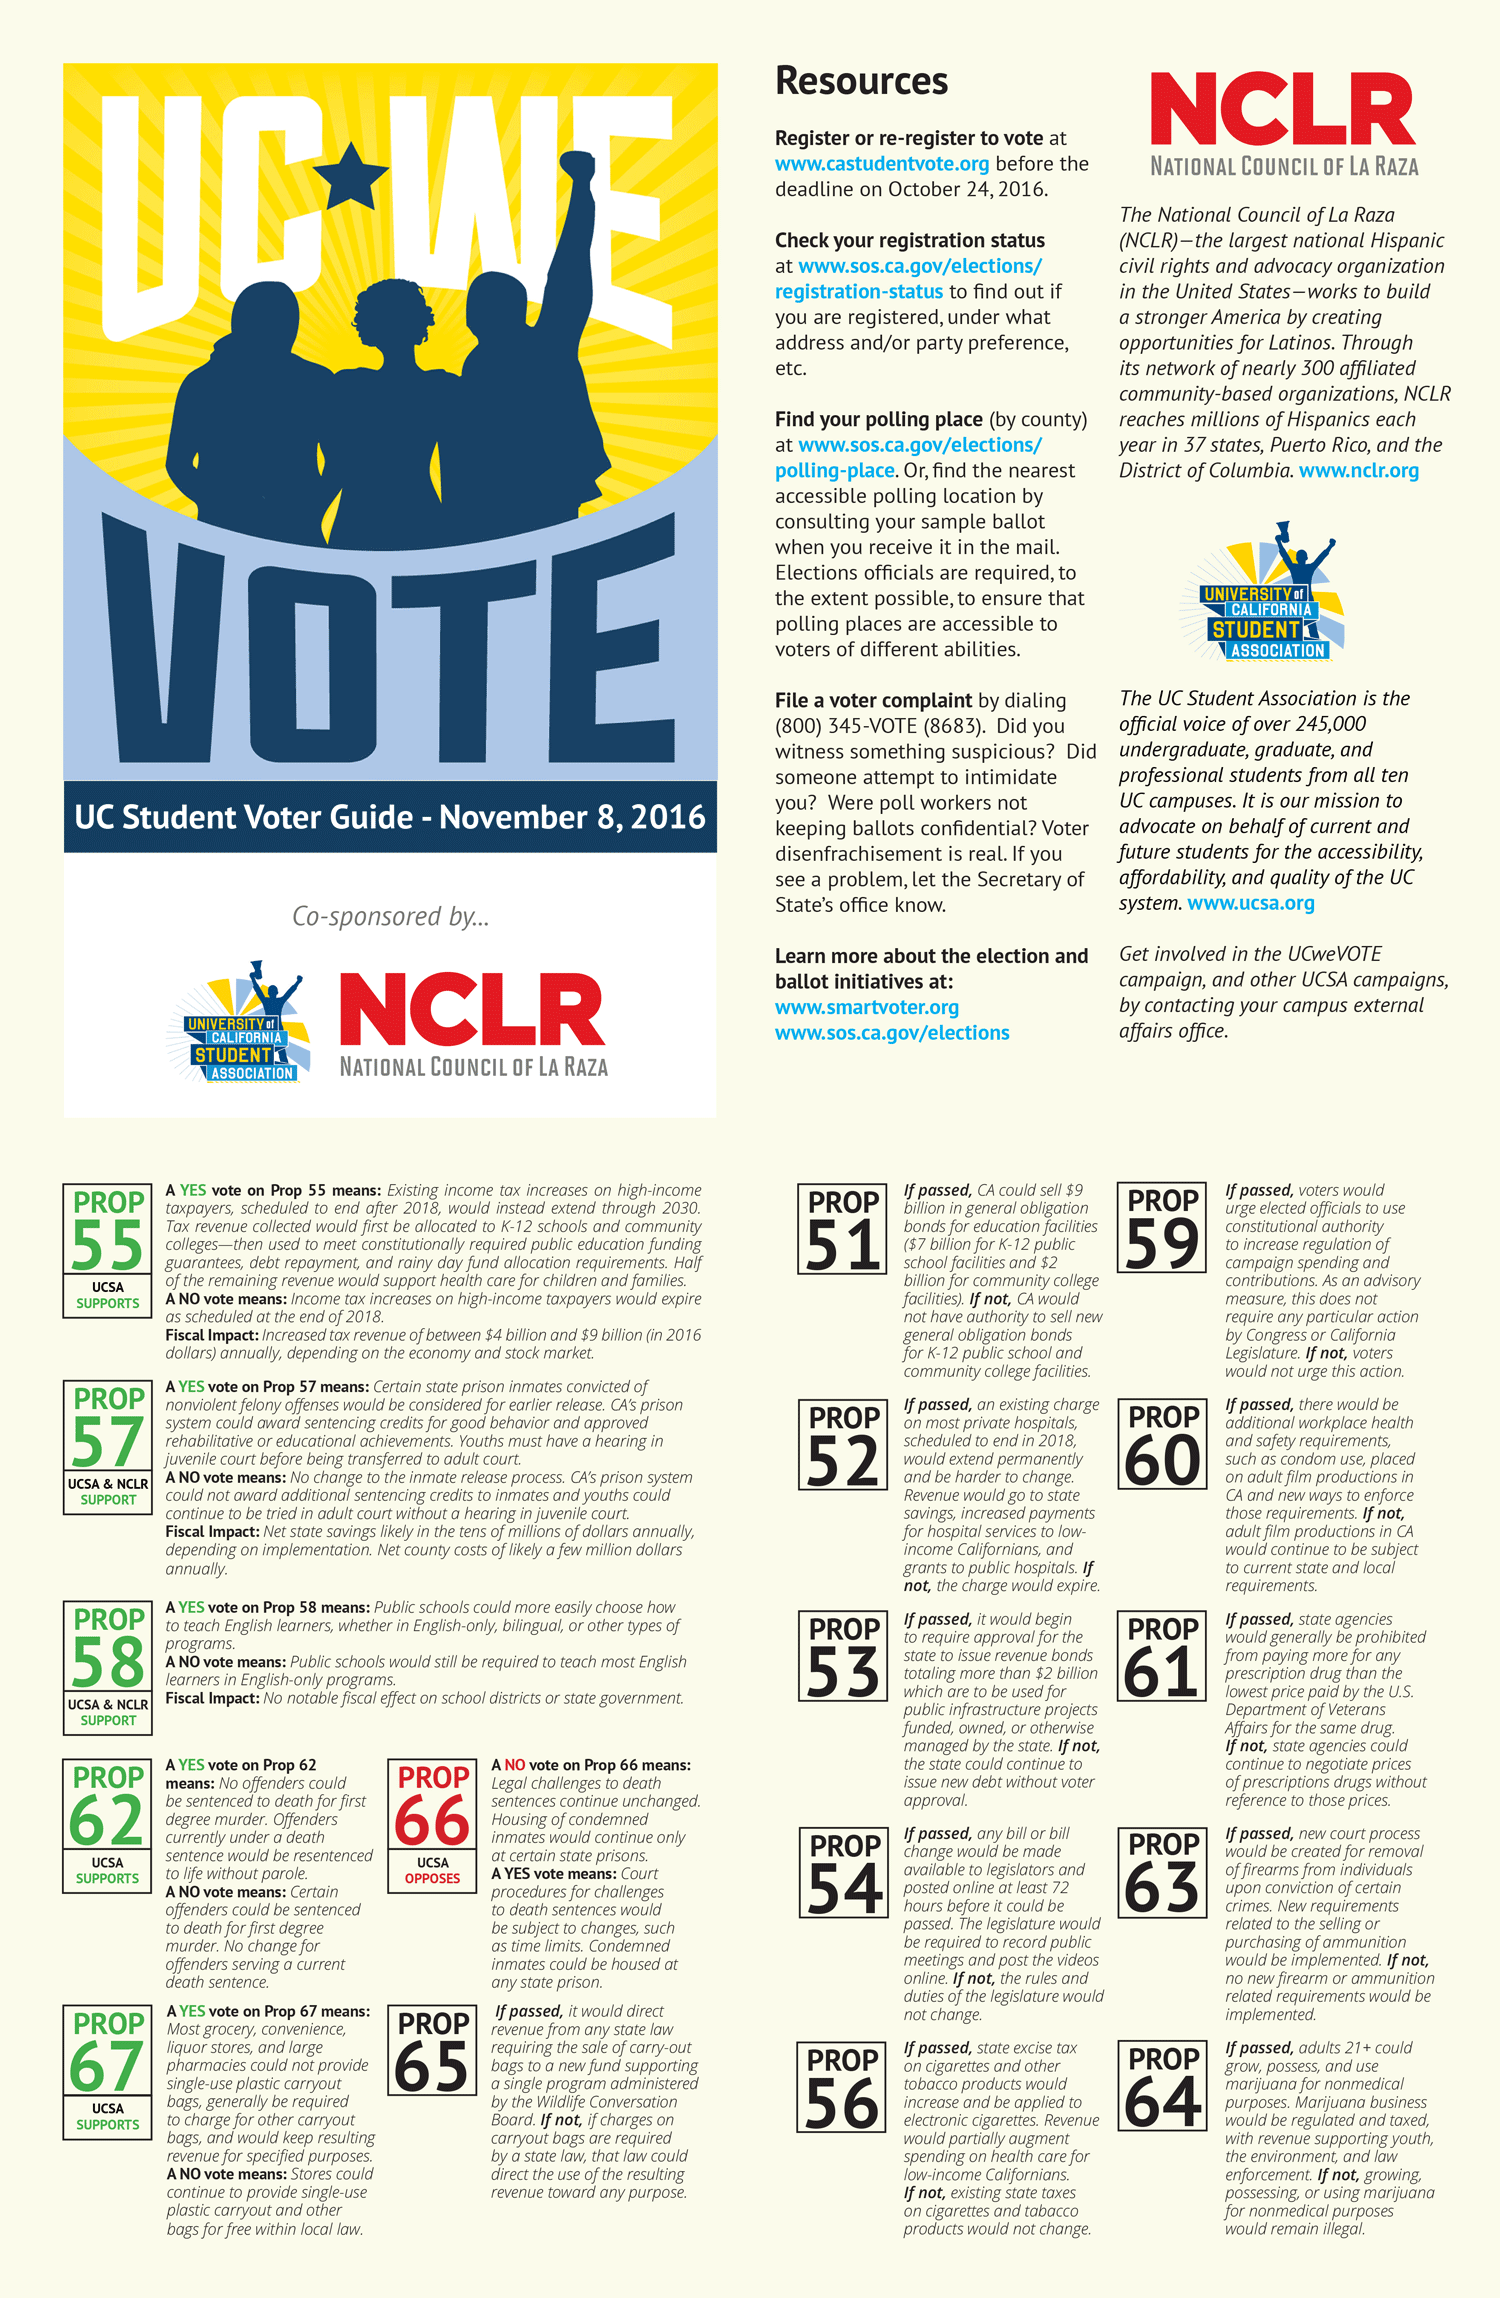 2016-ucwevote-voter-guide-full